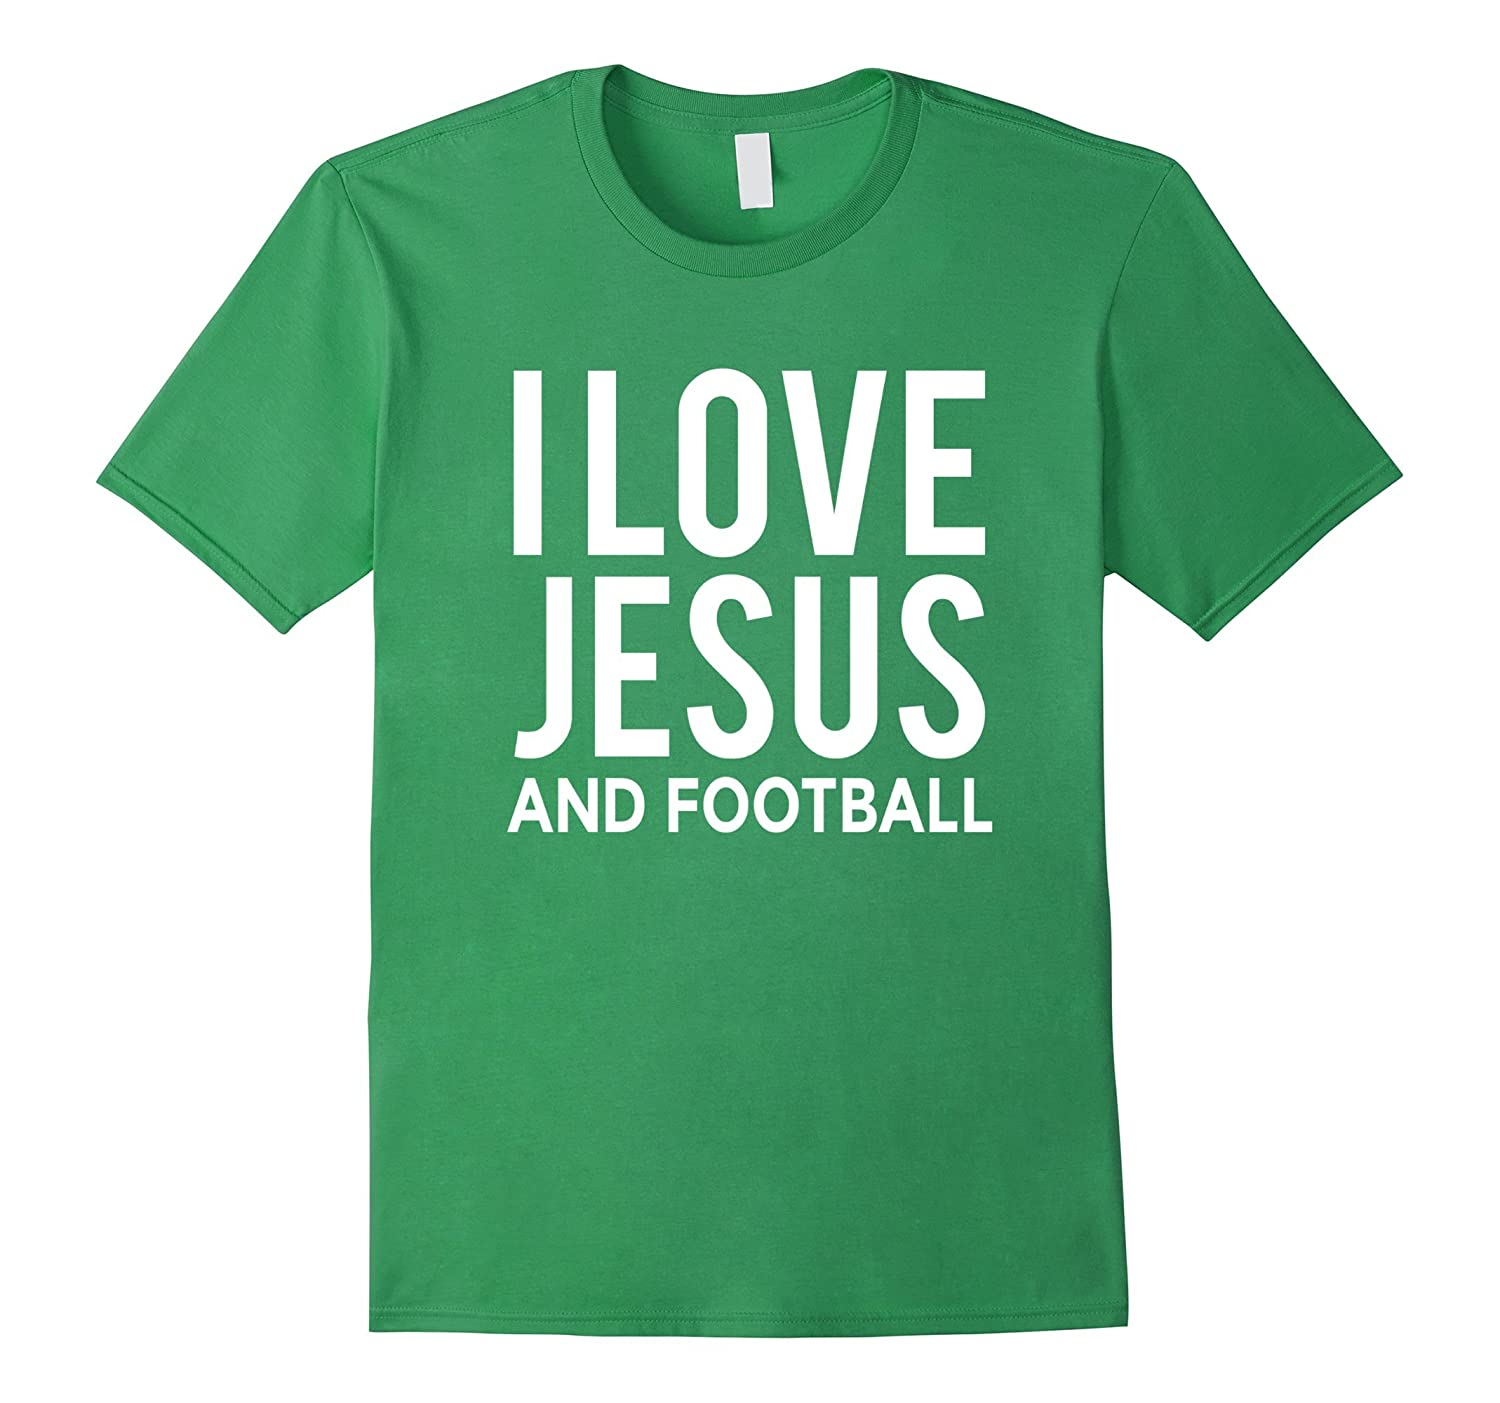 I Love Jesus and Football T-Shirt Funny Christian Message-CD